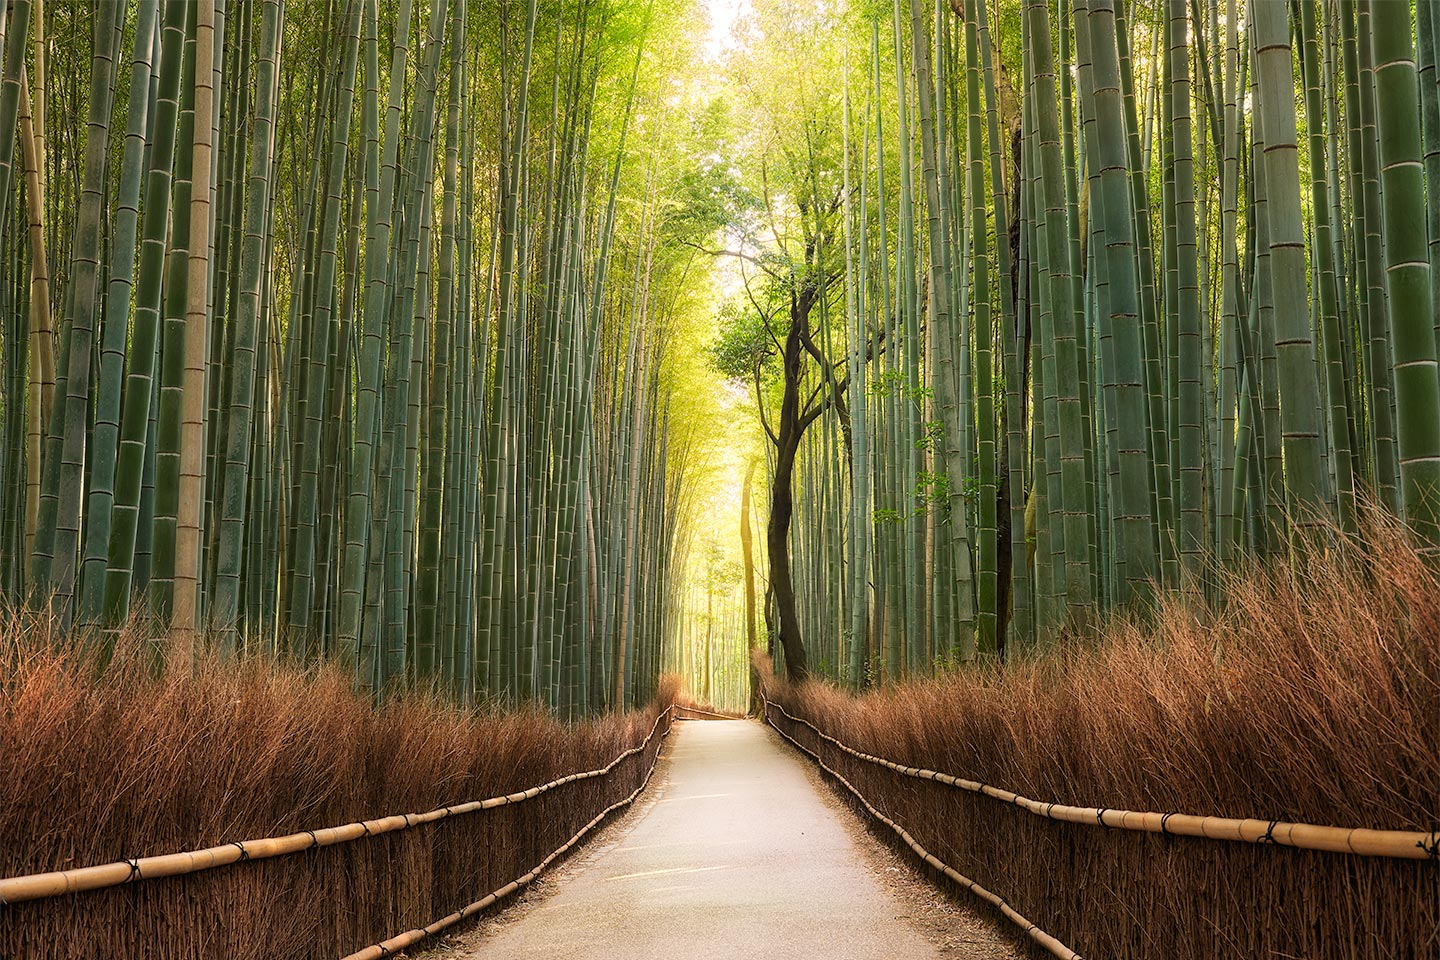 Japan-Photo-Tour-Elia-Locardi-Bamboo-Forest-glow-kyoto